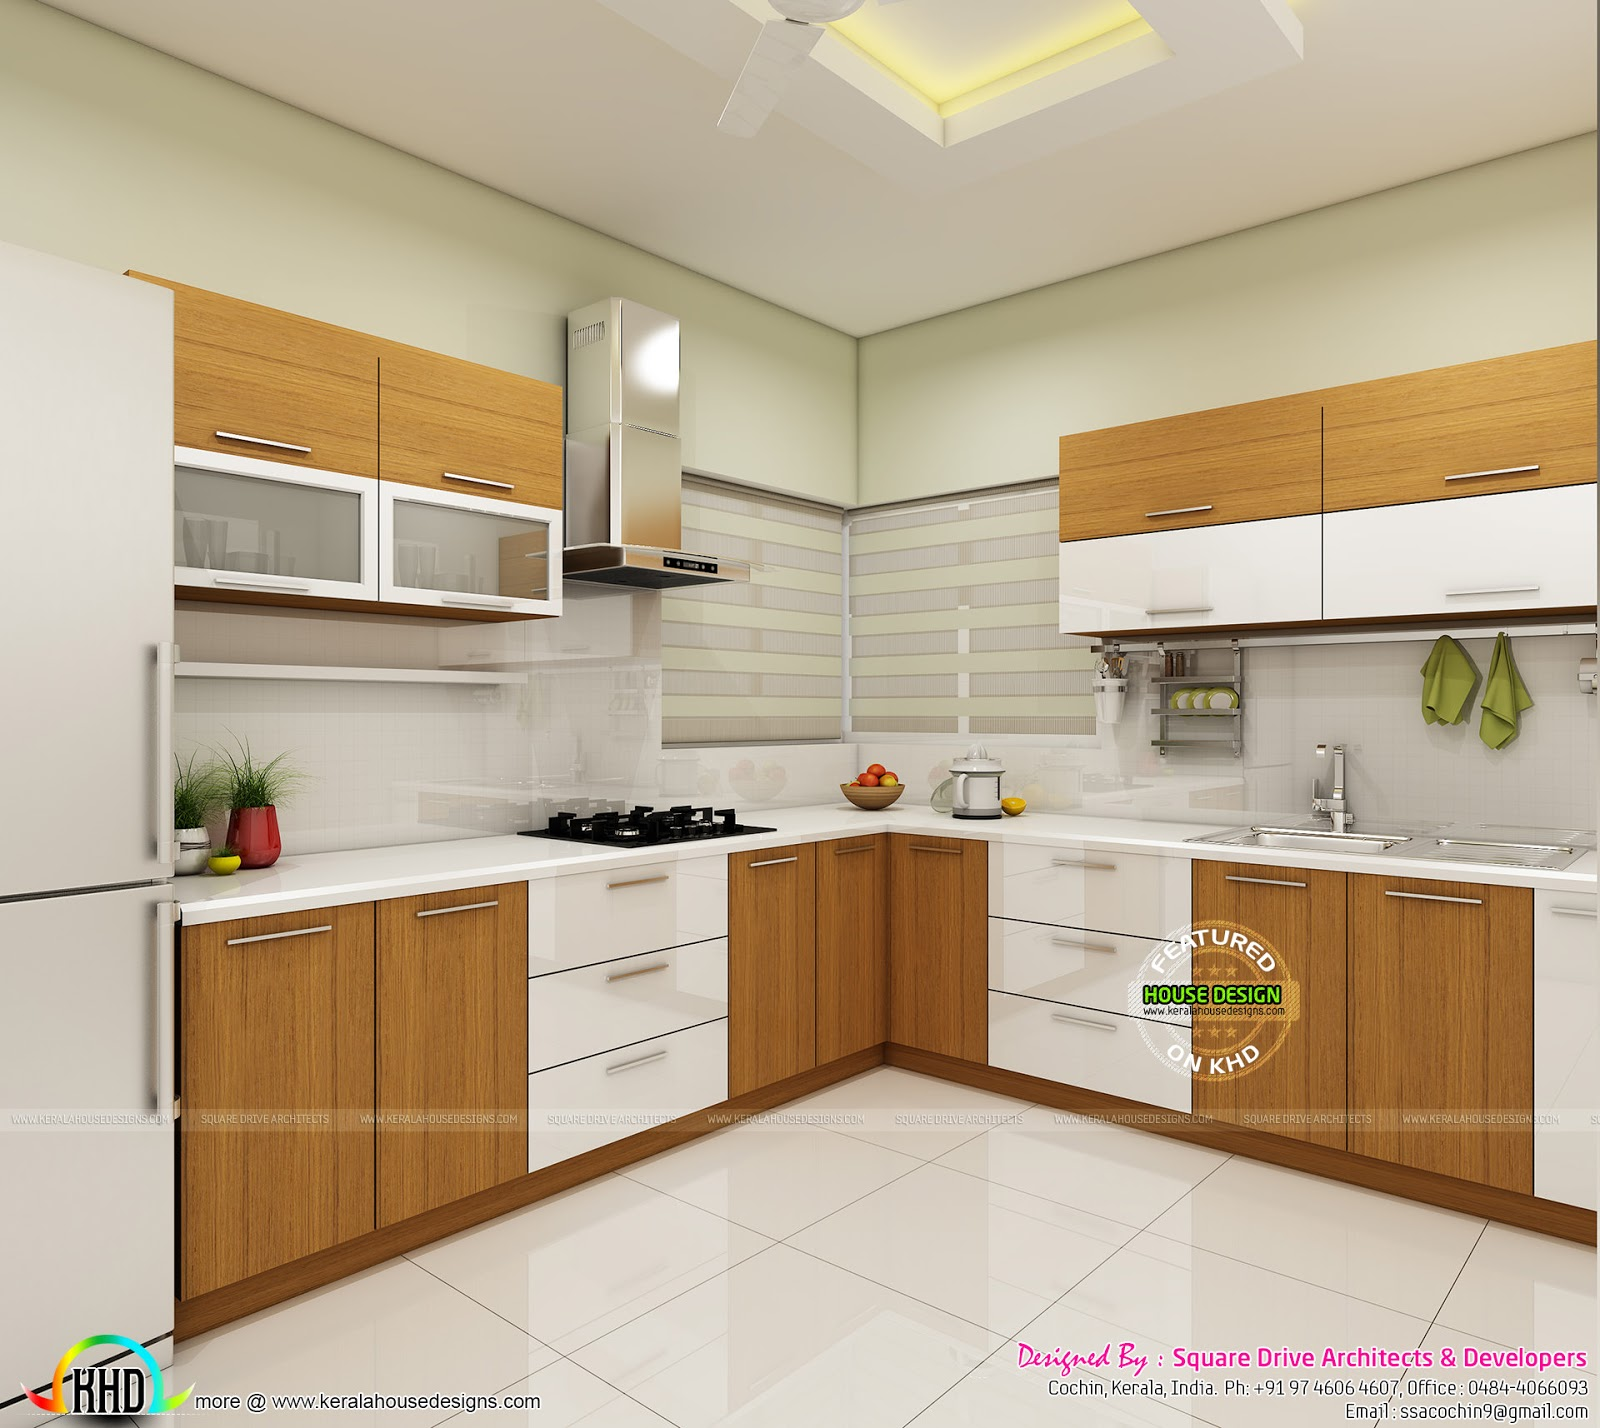 Modern home interiors of bedroom dining kitchen kerala home design and floor plans - Modern house interior design kitchen ...